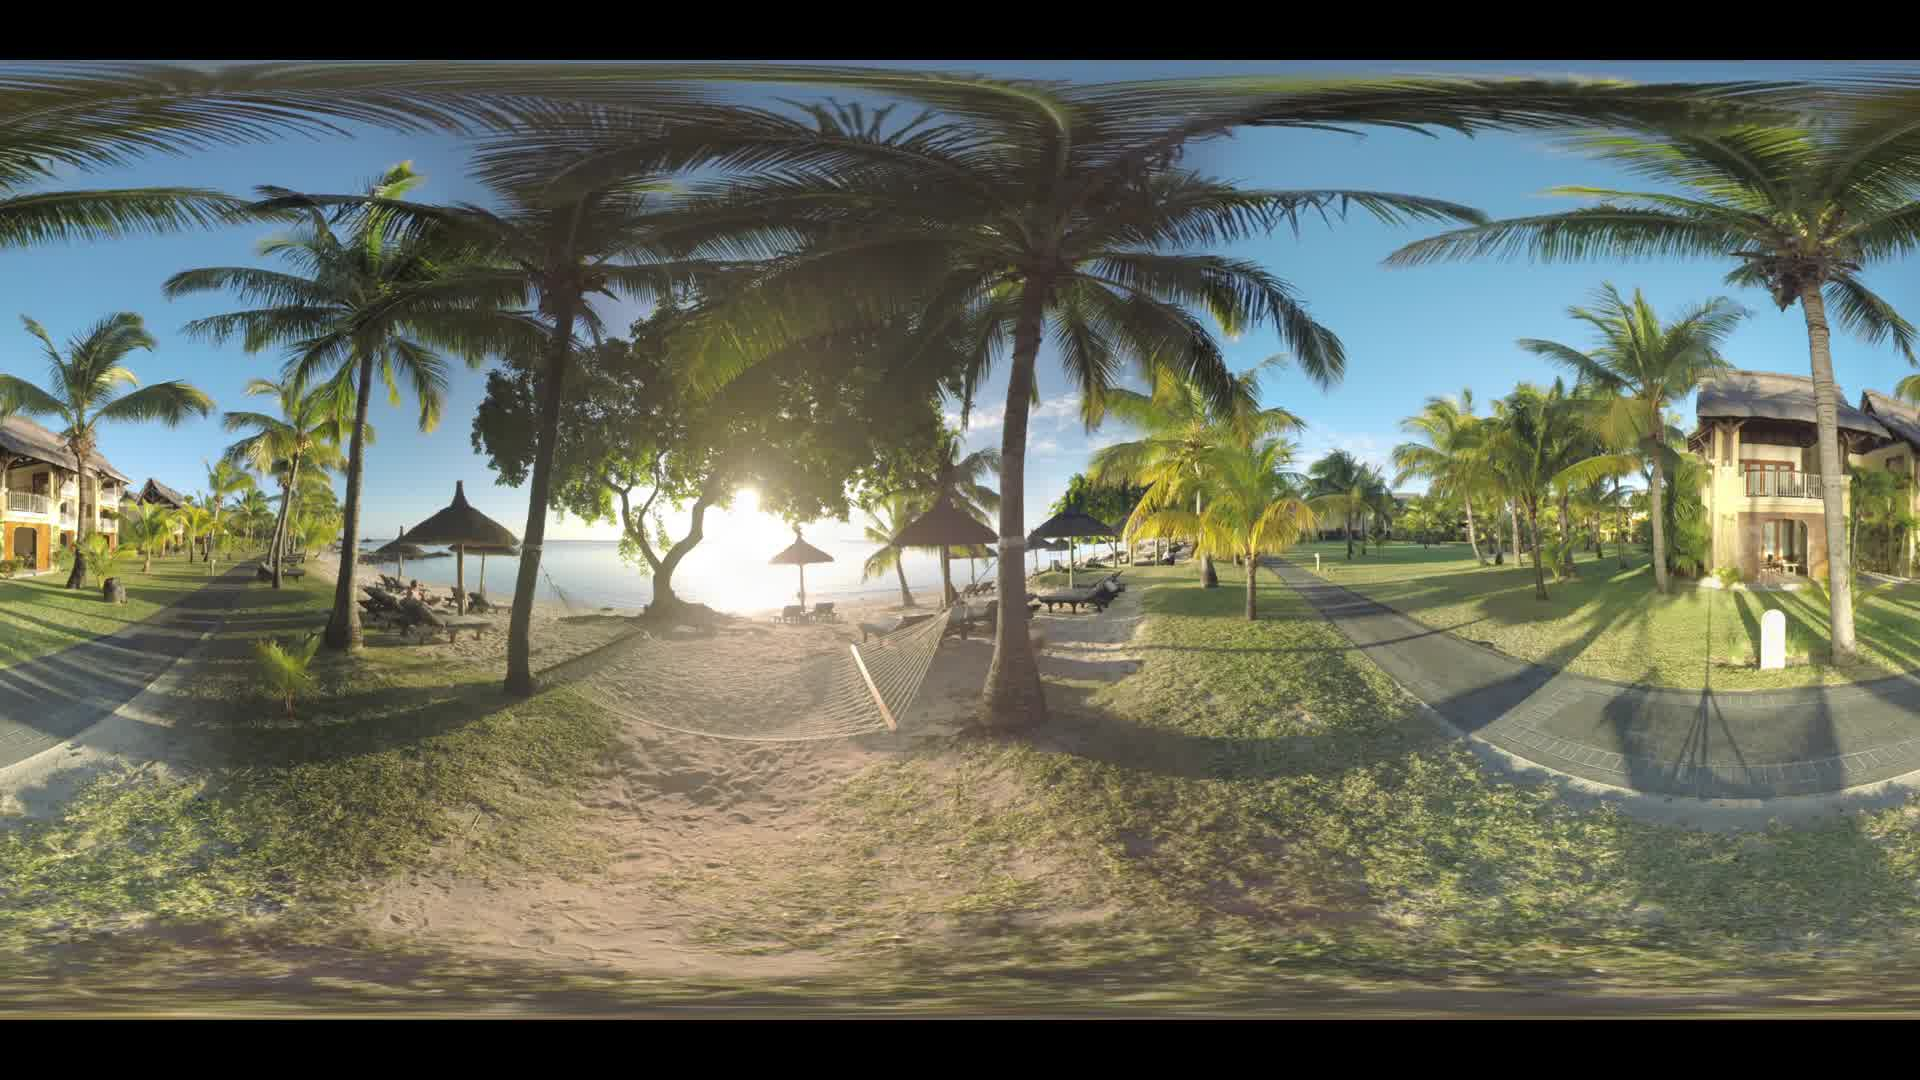 MAURITIUS ISLAND - JUNE 08, 2016: 360 VR video. Ocean beach with hammock, chaise-longues and straw umbrellas at sunset. Tropical resort with hotels and palms everywhere. People walking along the path and cart driving there